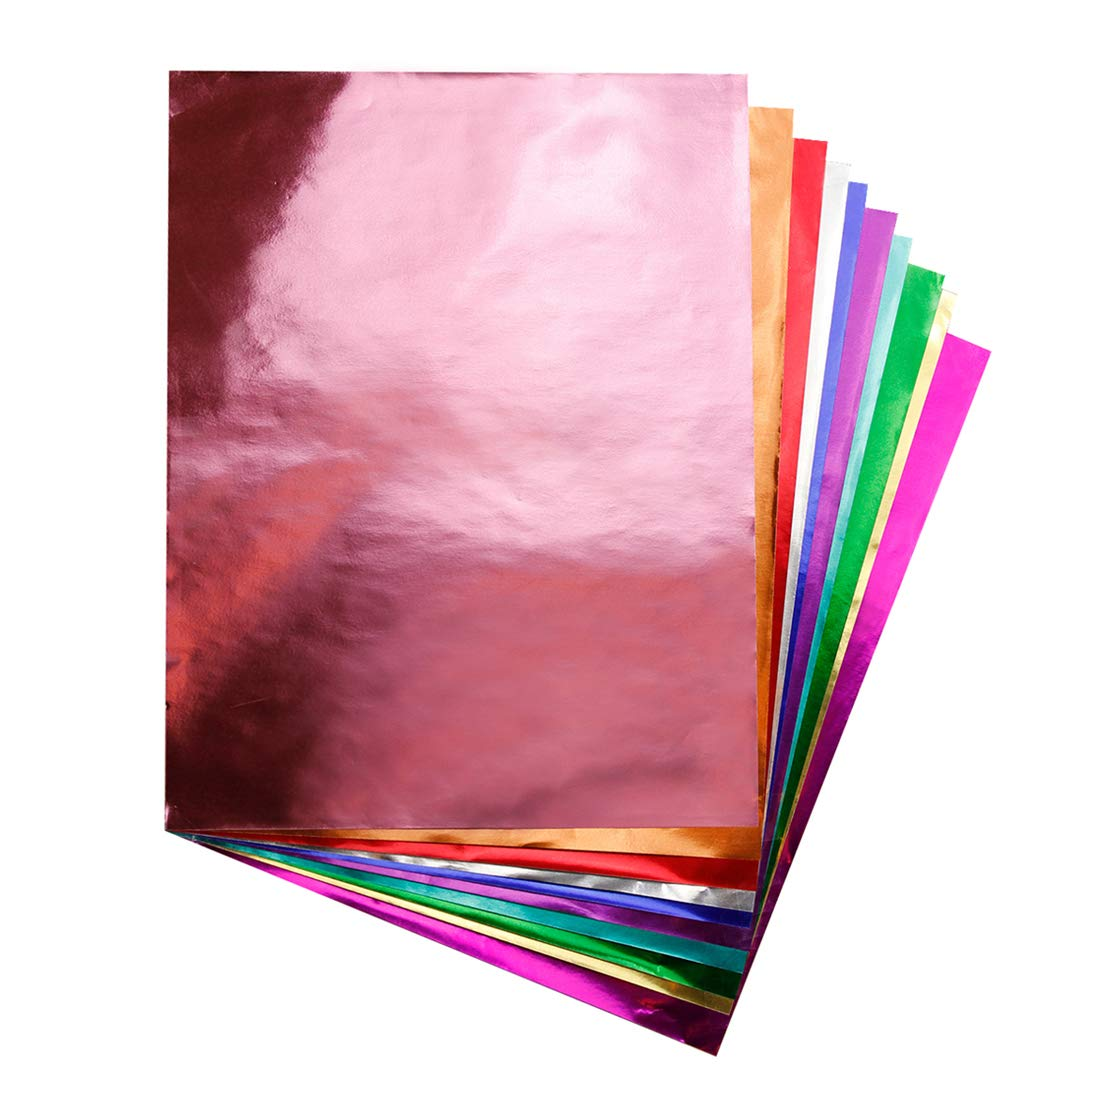 Hygloss Products Metallic Foil Paper Sheets - 10 x 13 Inch, 40 Sheets - Assorted Colors by Hygloss